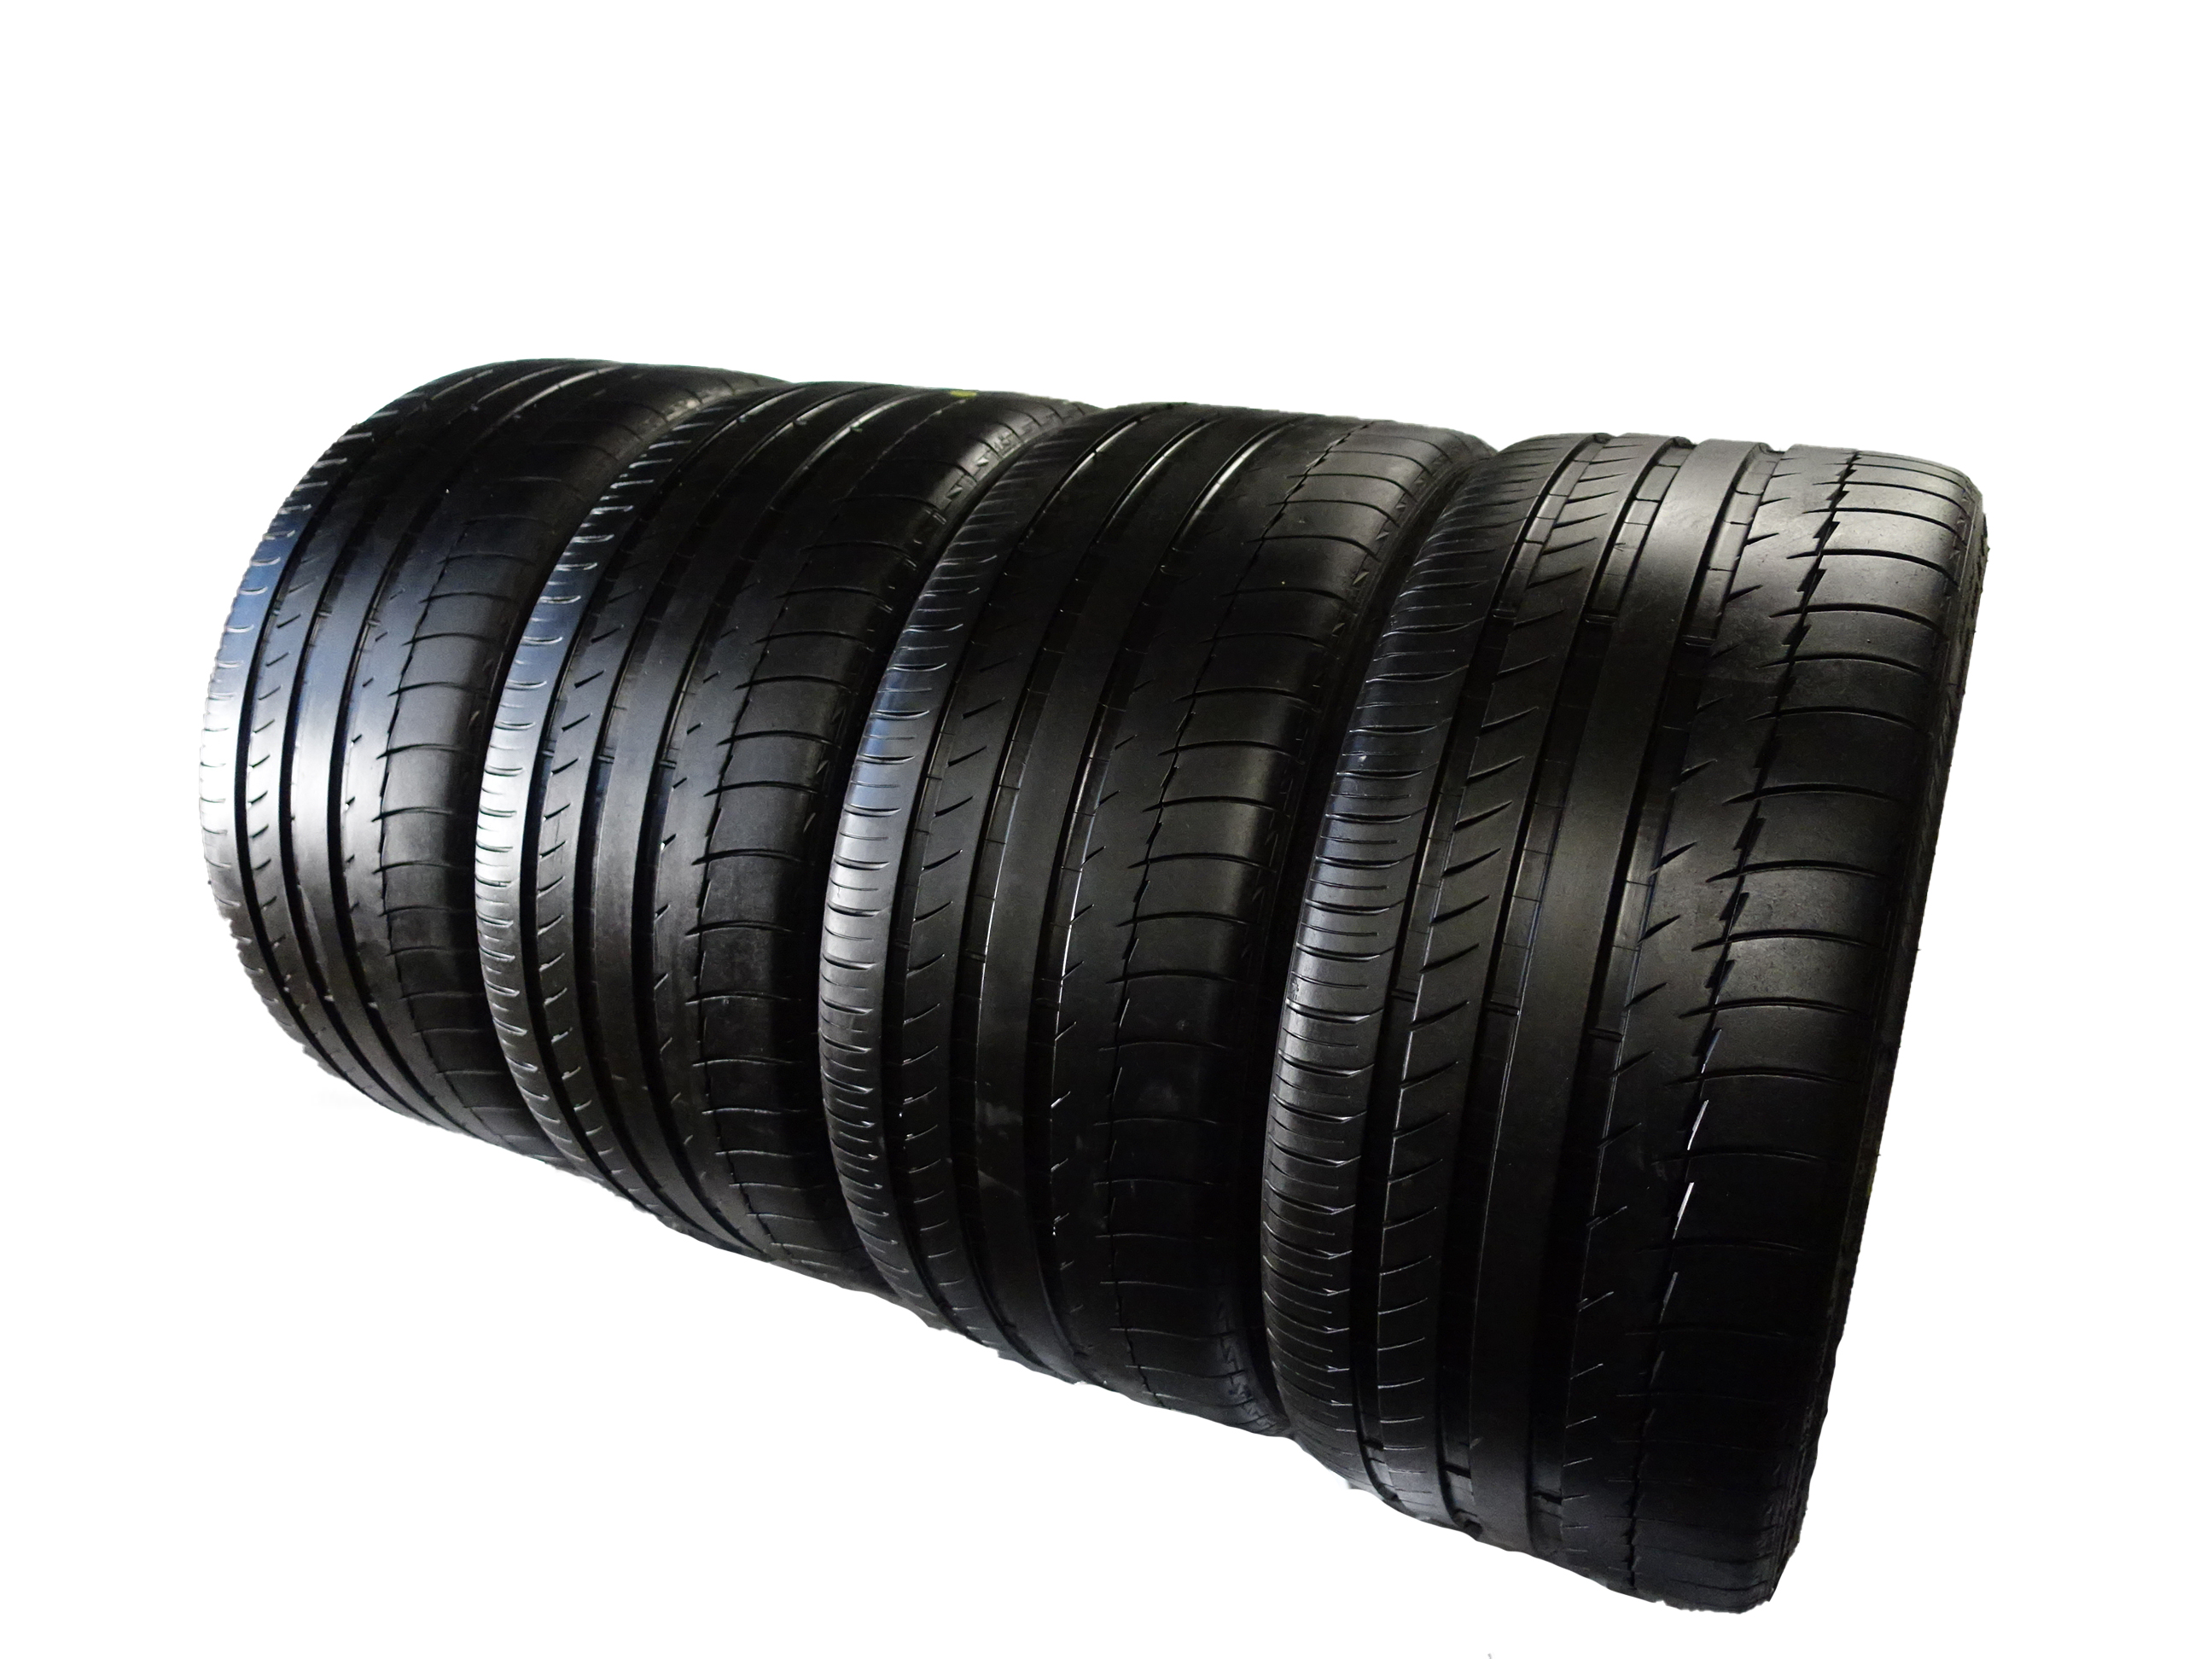 335 30 20 michelin Pilot sport ps2